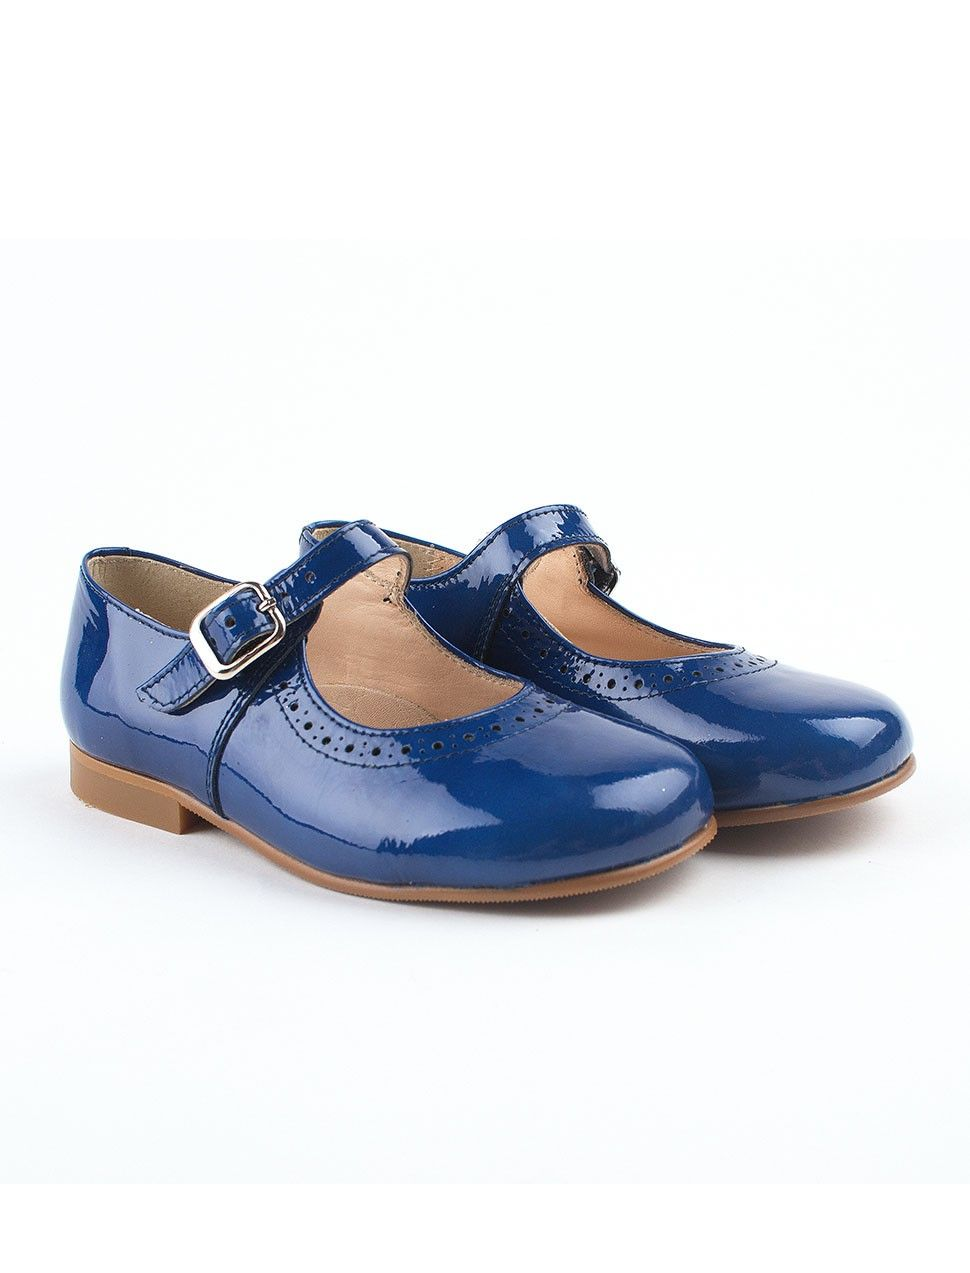 2853a27a953d0 classic brogues patent leather shoes with buckle | Kids!!! | Girls ...